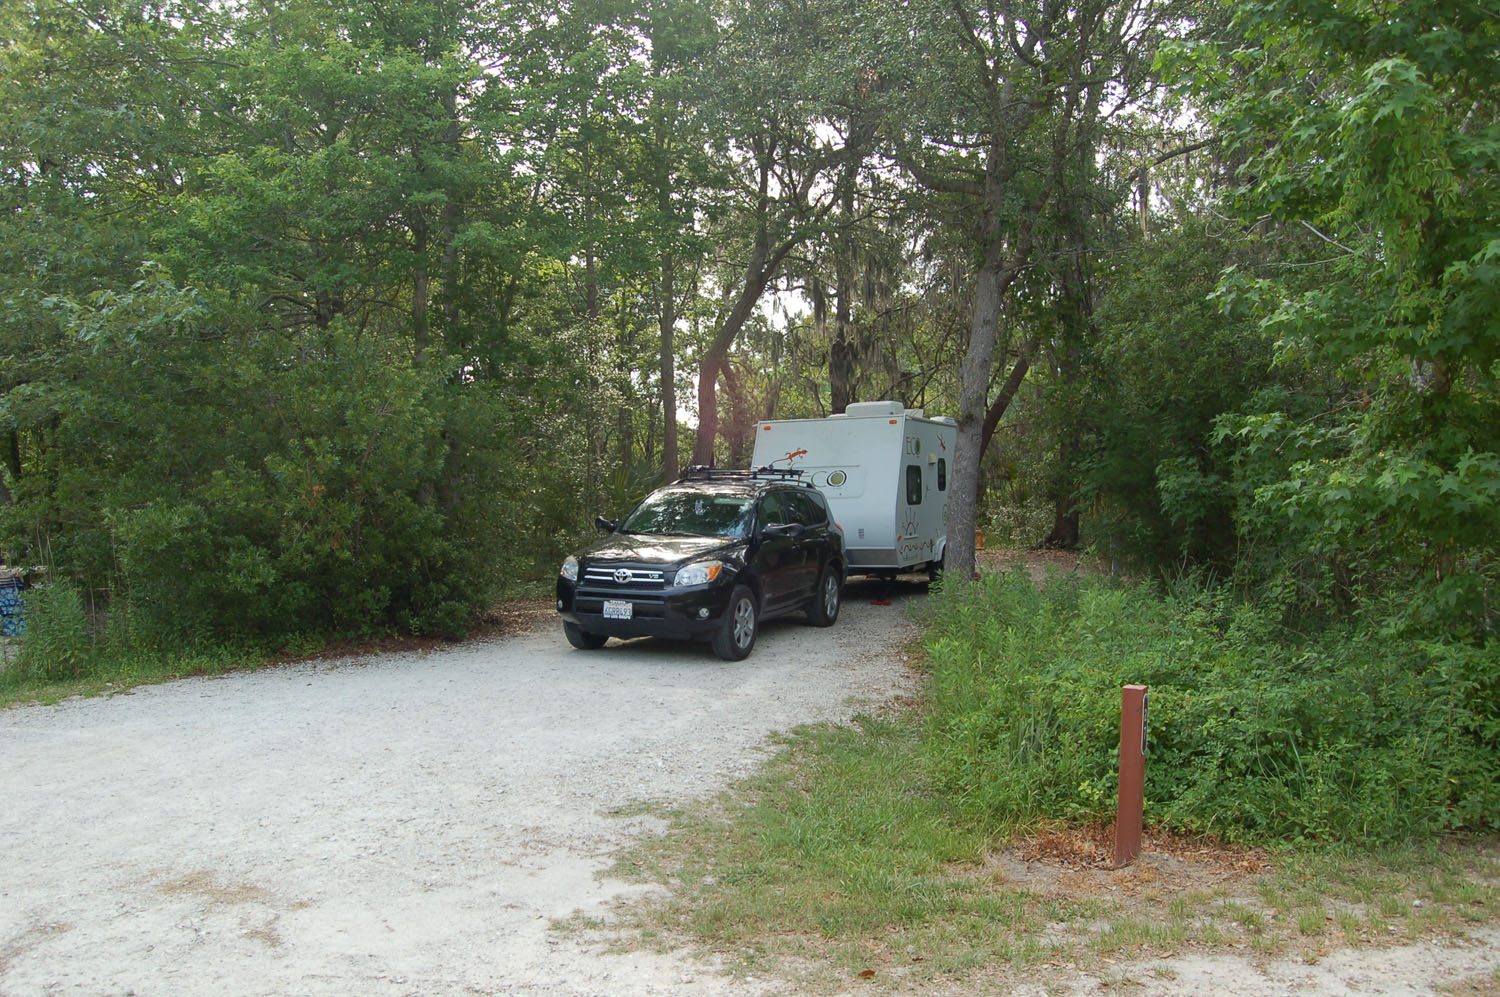 Image of campsite #27 at the Campground at James Island County Park